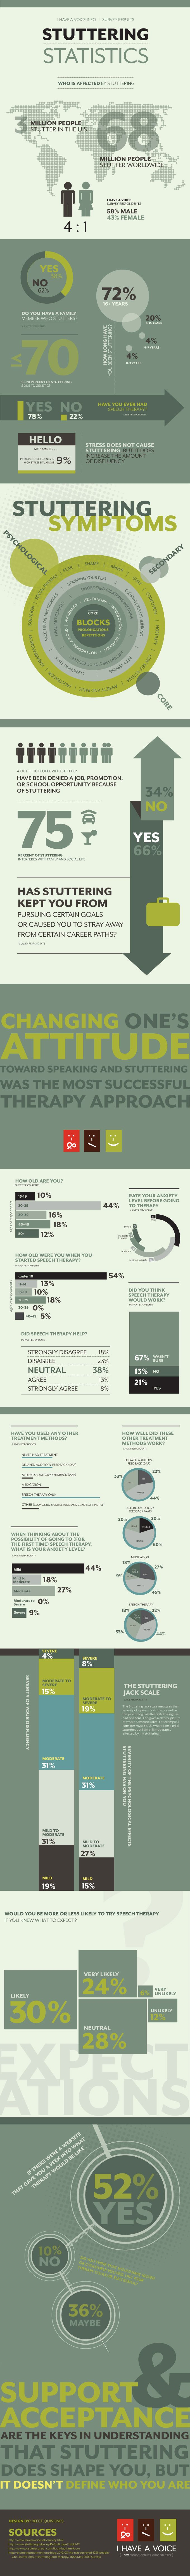 Stuttering Facts and Stats, wish more people knew more about it